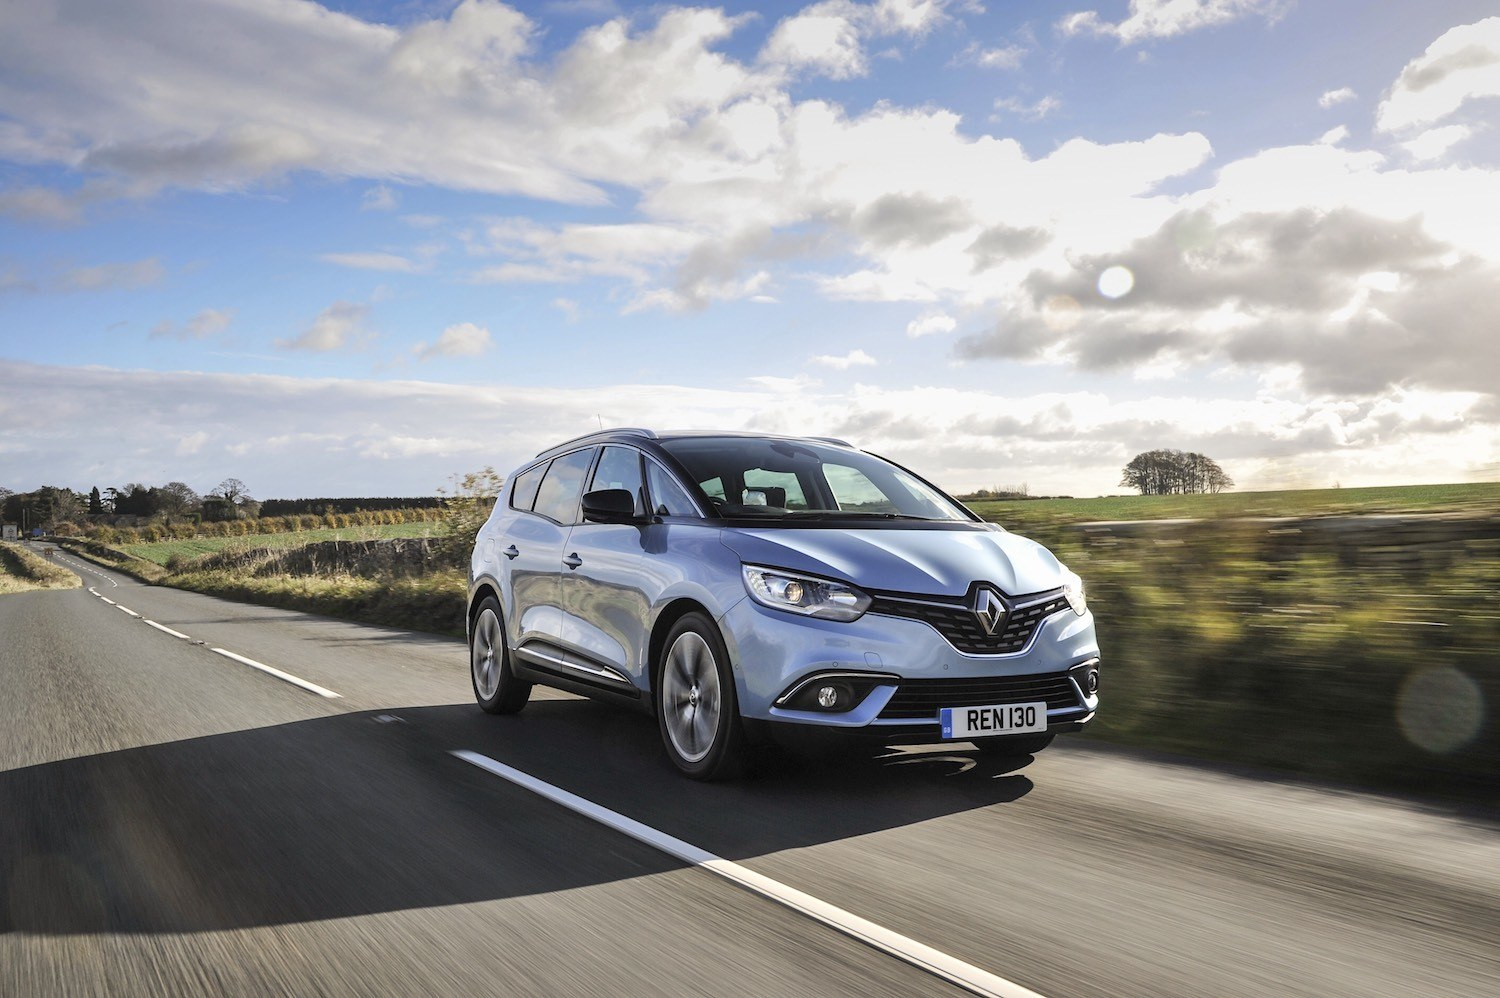 Neil Lyndon reviews the lates Renault Scenic for Drive 19